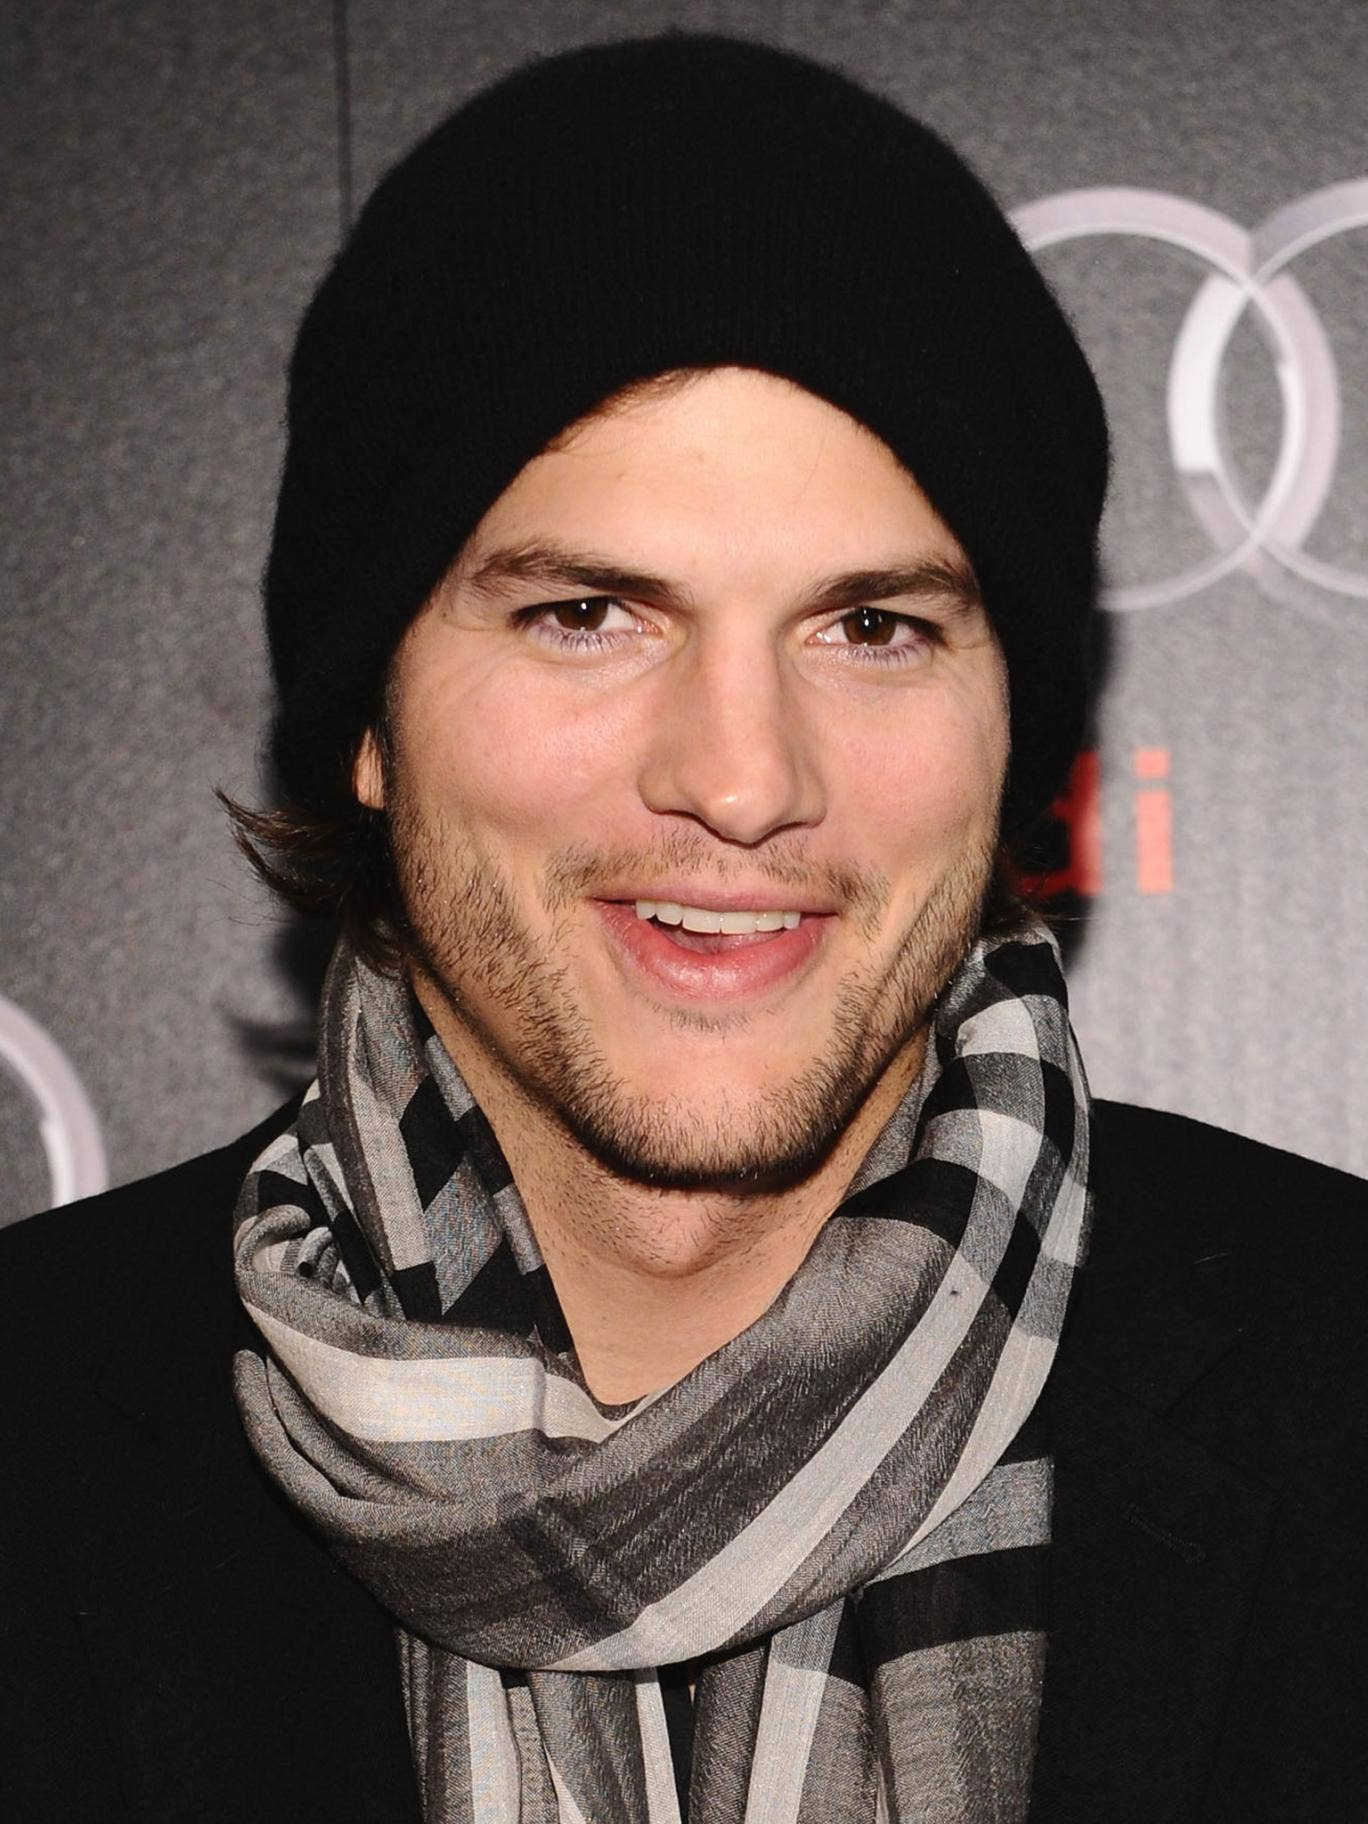 Ashton Kutcher, star of MTV's 'Punk'd', is one of a growing band of celebrity 'swatting' victims